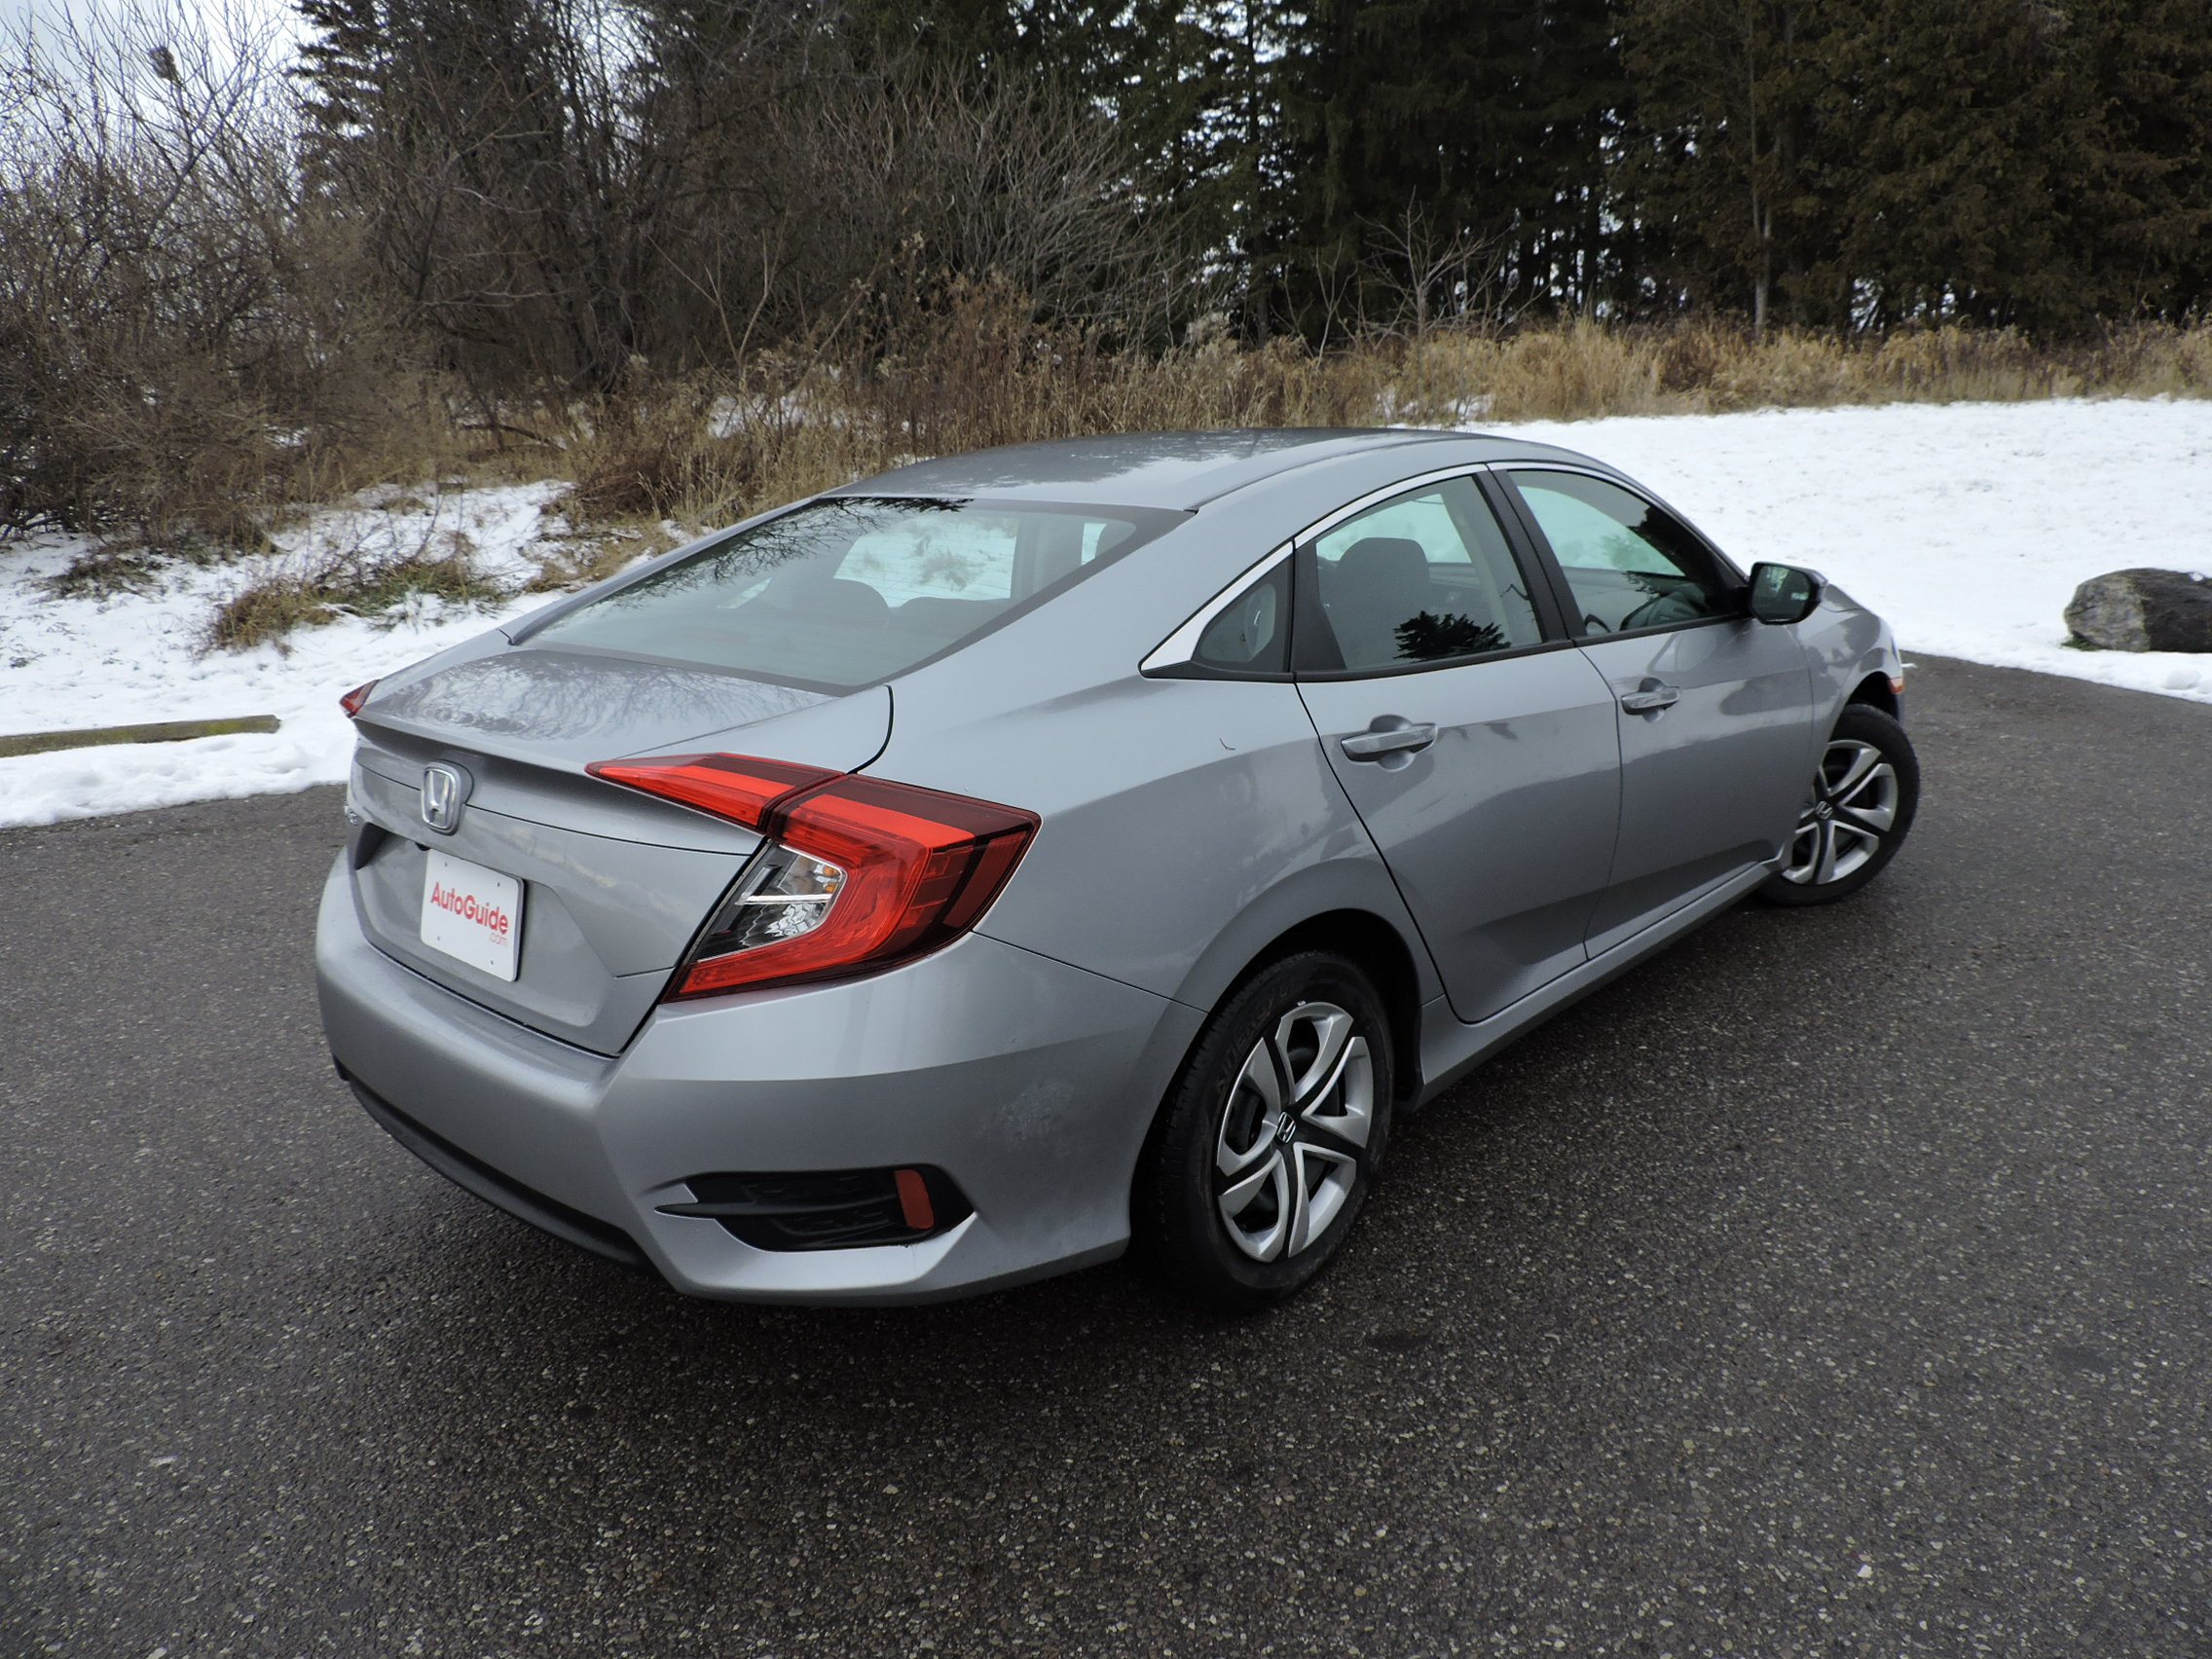 2016 honda civic lx review news for 2016 honda civic ex t review